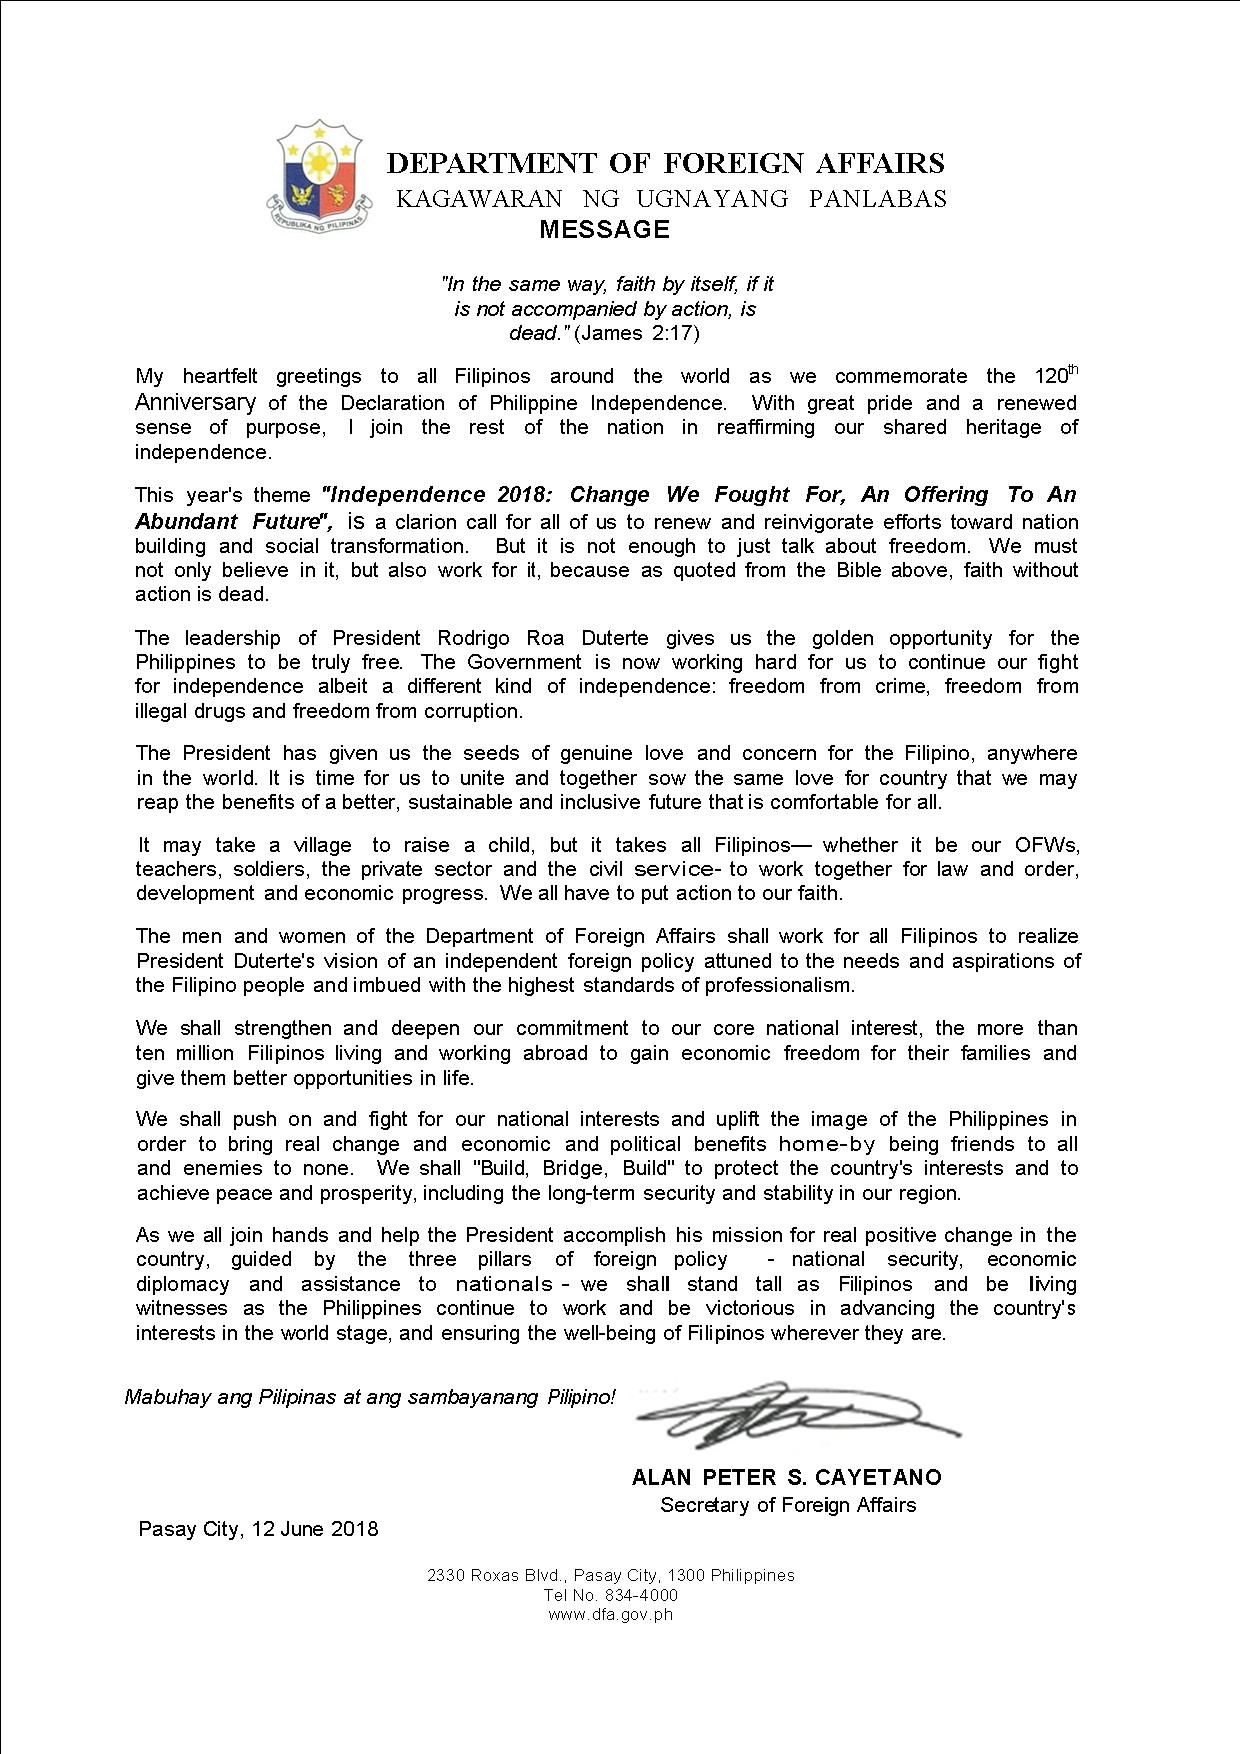 12 June 2018 : Independence Day Message of Secretary Alan Peter S. Cayetano